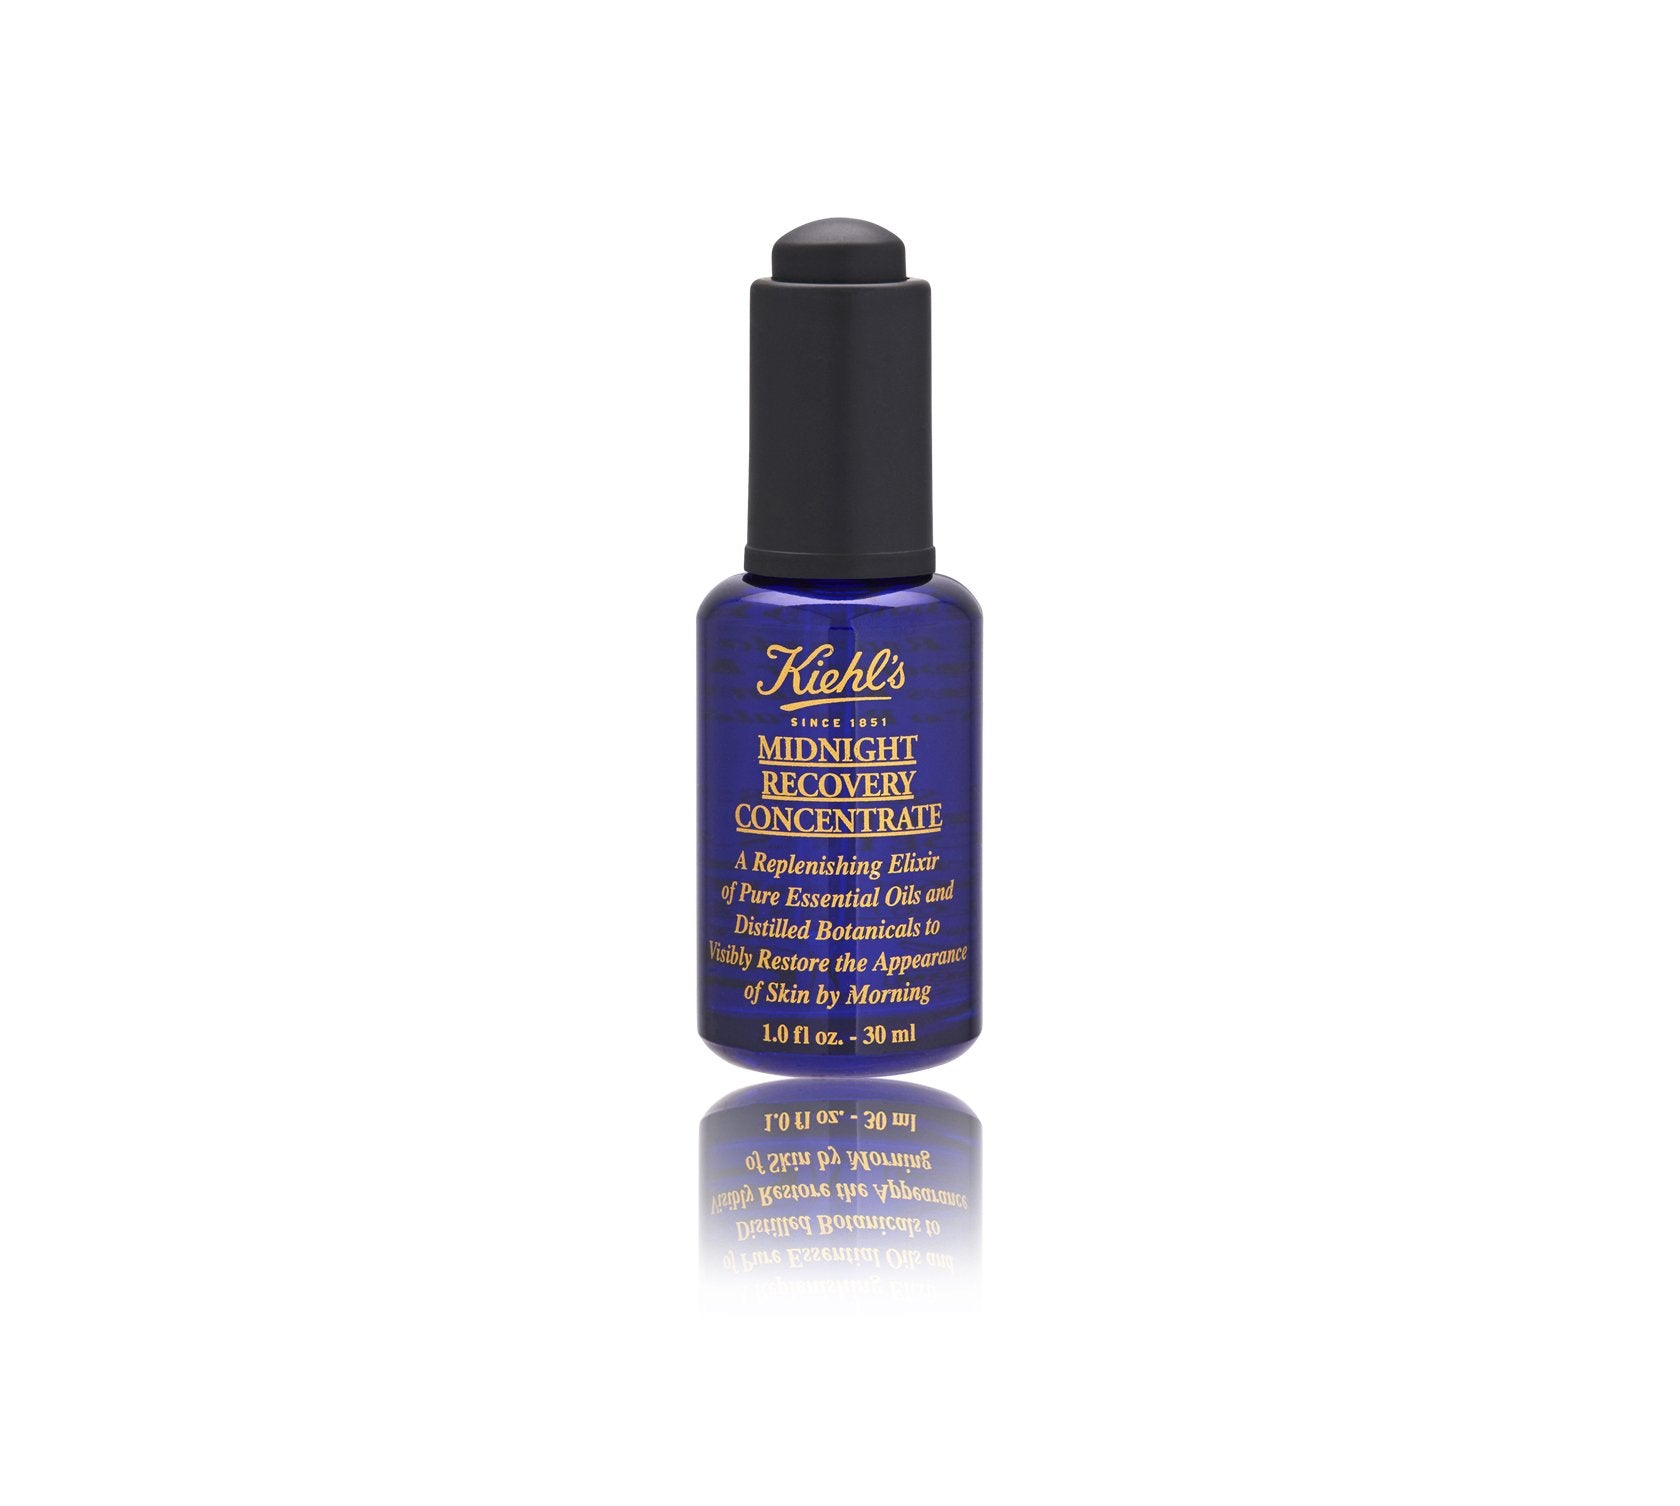 KiehlsMidnight Recovery Concentrate